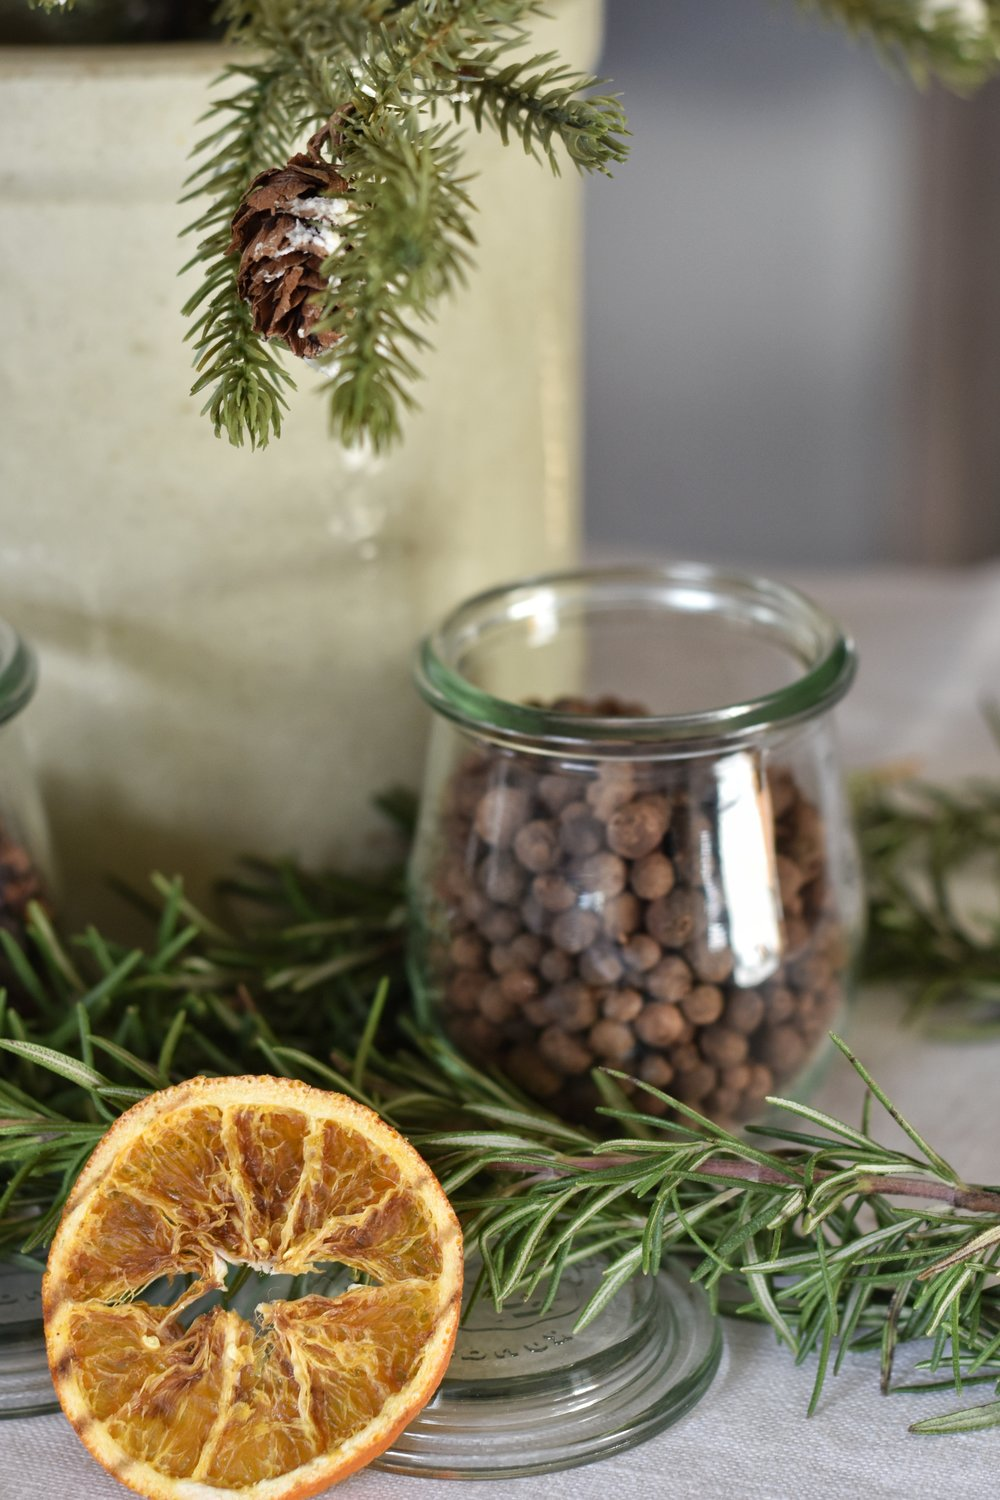 How to simmer the best smelling homemade potpourri for the holiday Christmas season.